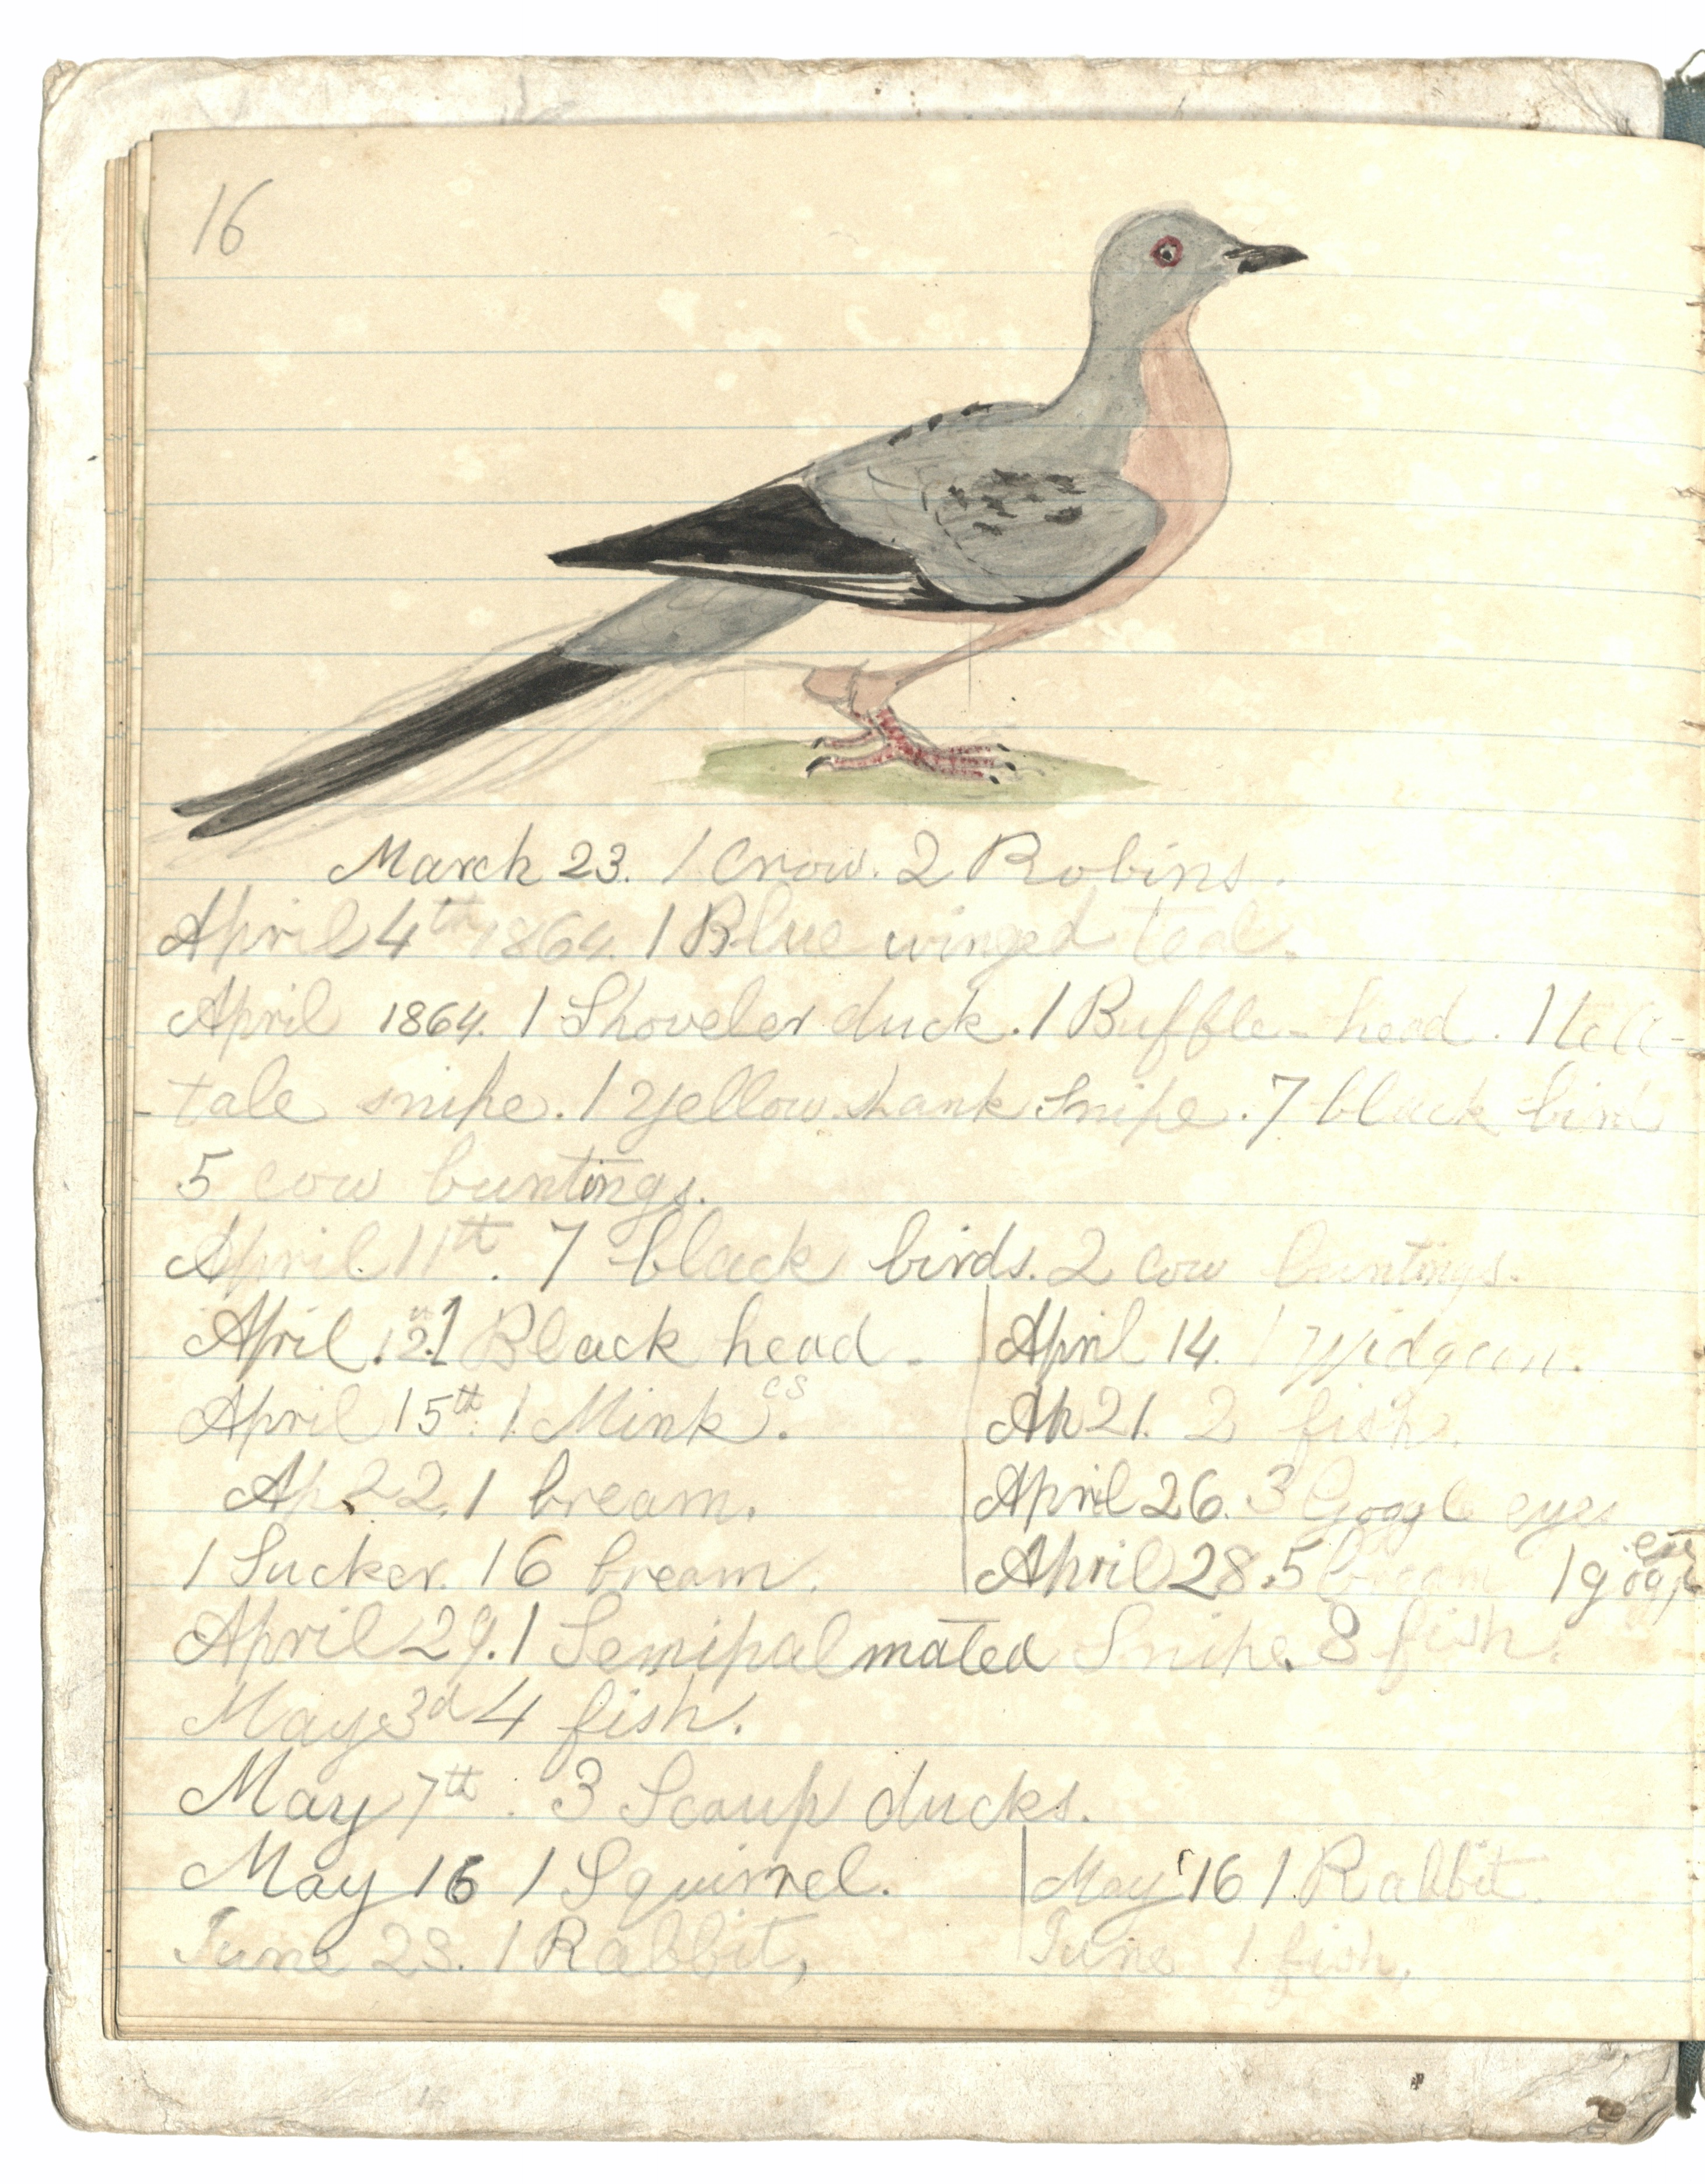 Langdon Cheves III Hunting Notes & Art, Page 17